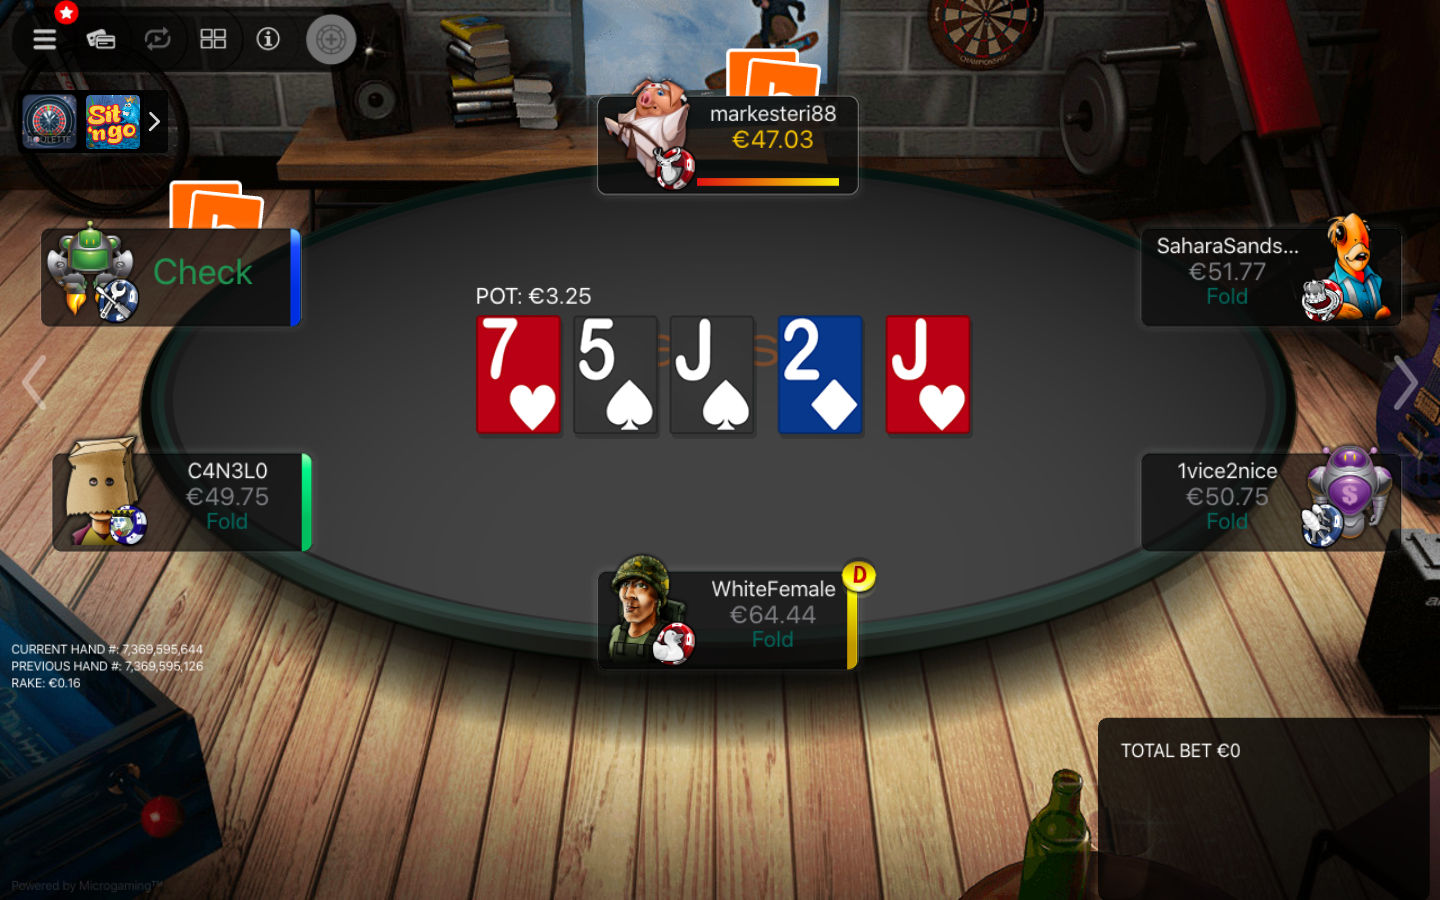 Betsson Poker Table Holdem